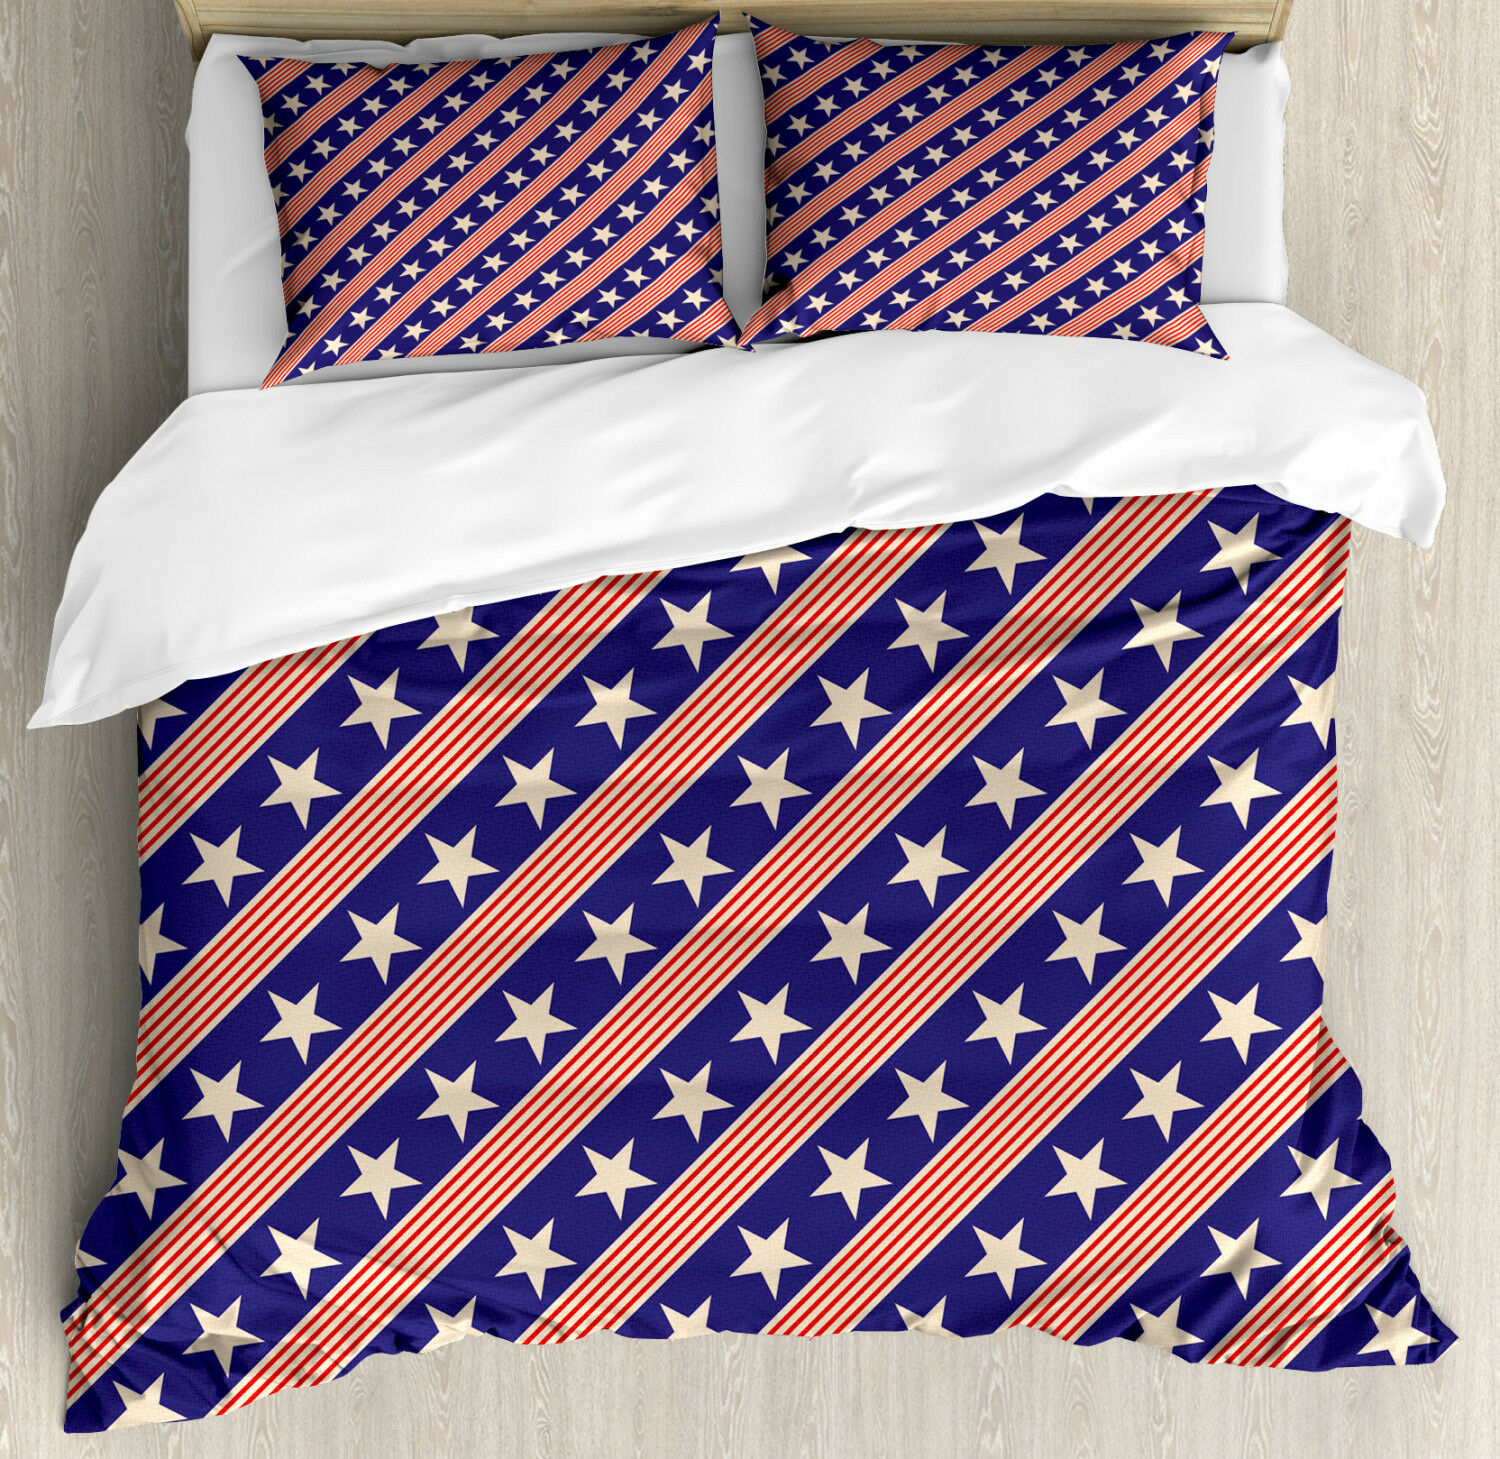 Primitive Country Duvet Cover Set with Pillow Shams Patriot Star Print